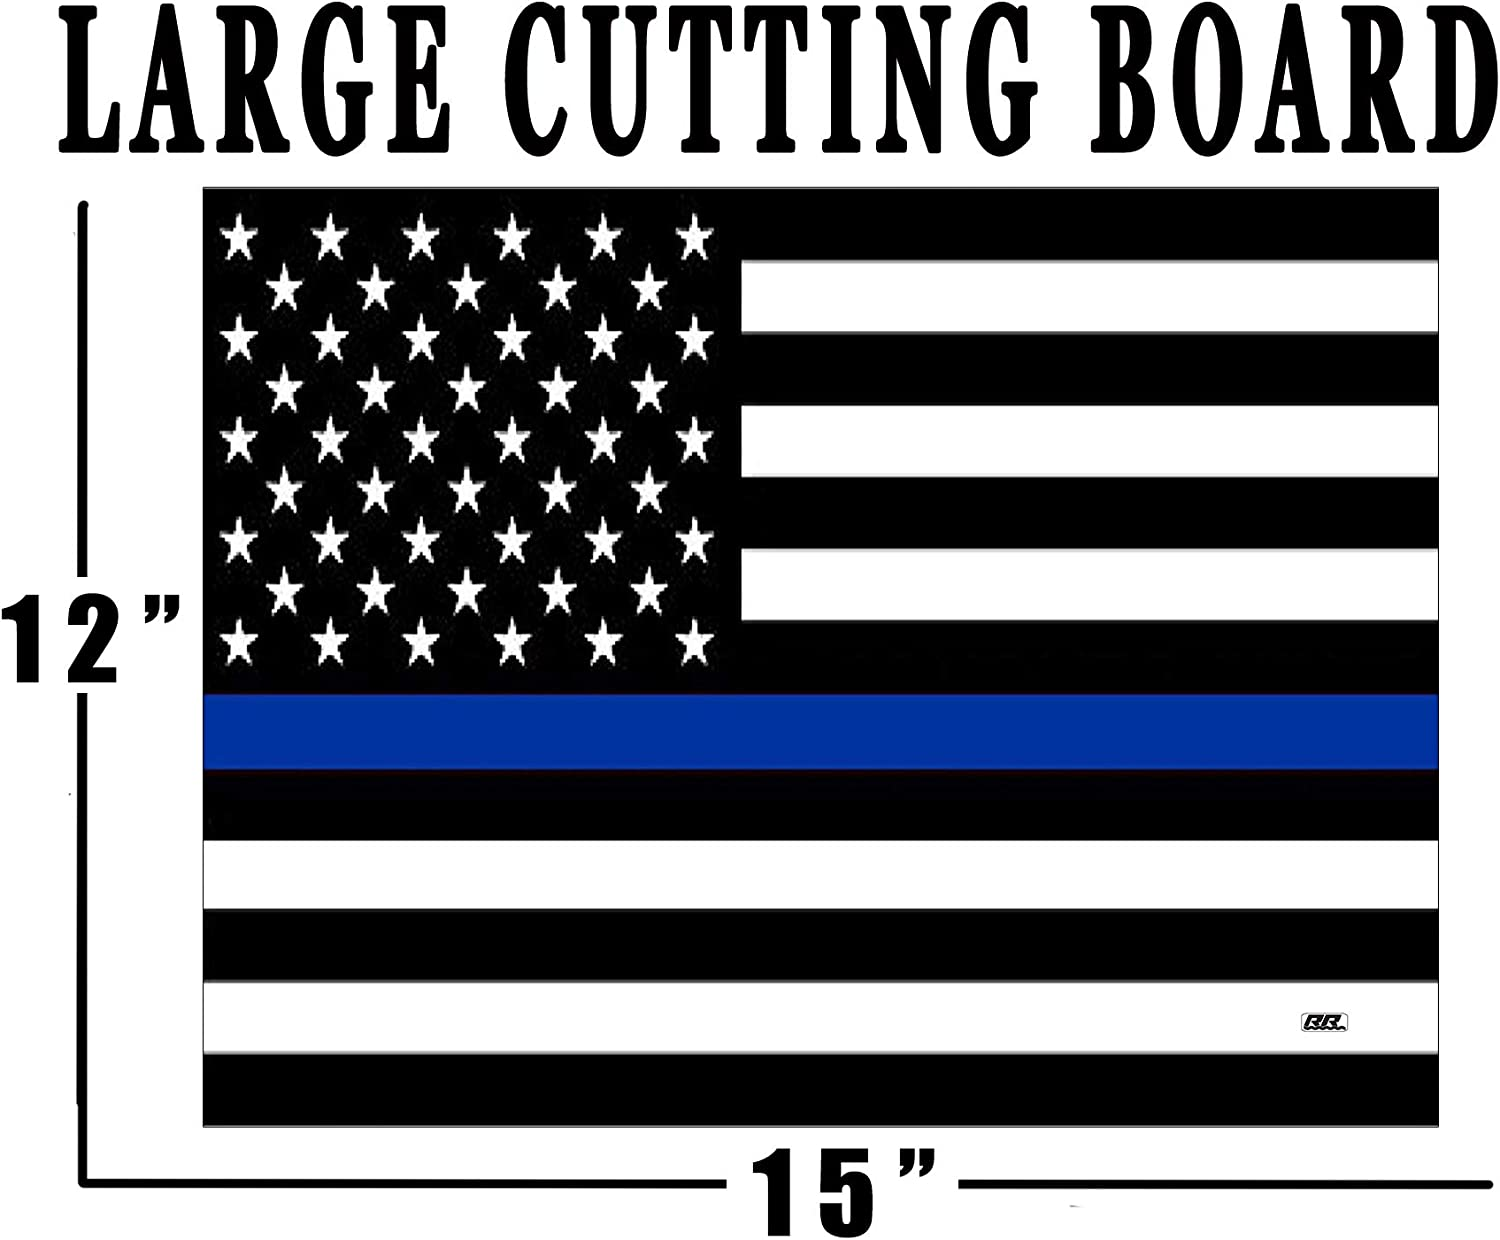 The Thin Blue Line Flag Glass Cutting Board Decorative Police Officer Sheriff Deputy Law Enforcement PD Department Design